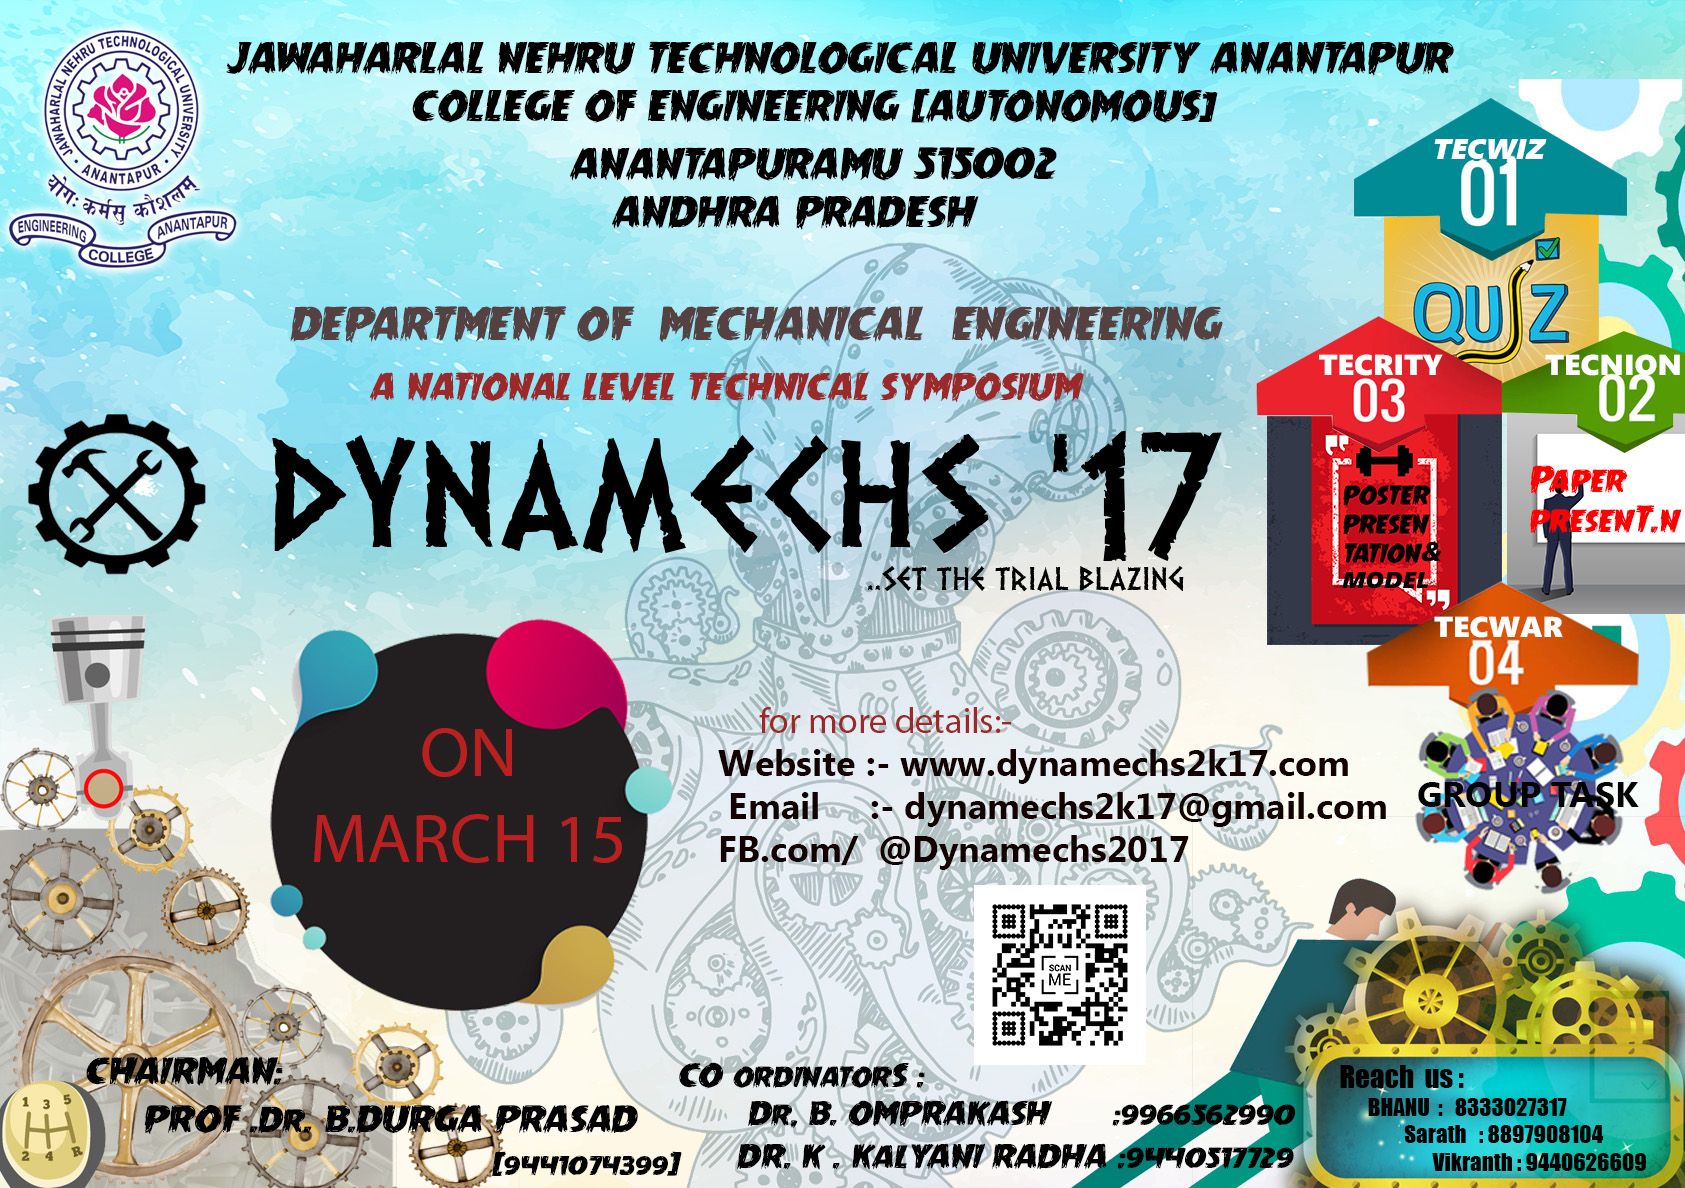 Poster design for college fest - Organiser Jntua College Of Engineering Anantapur Location Anantapur Andhra Pradesh Event Dates 15th March 2017